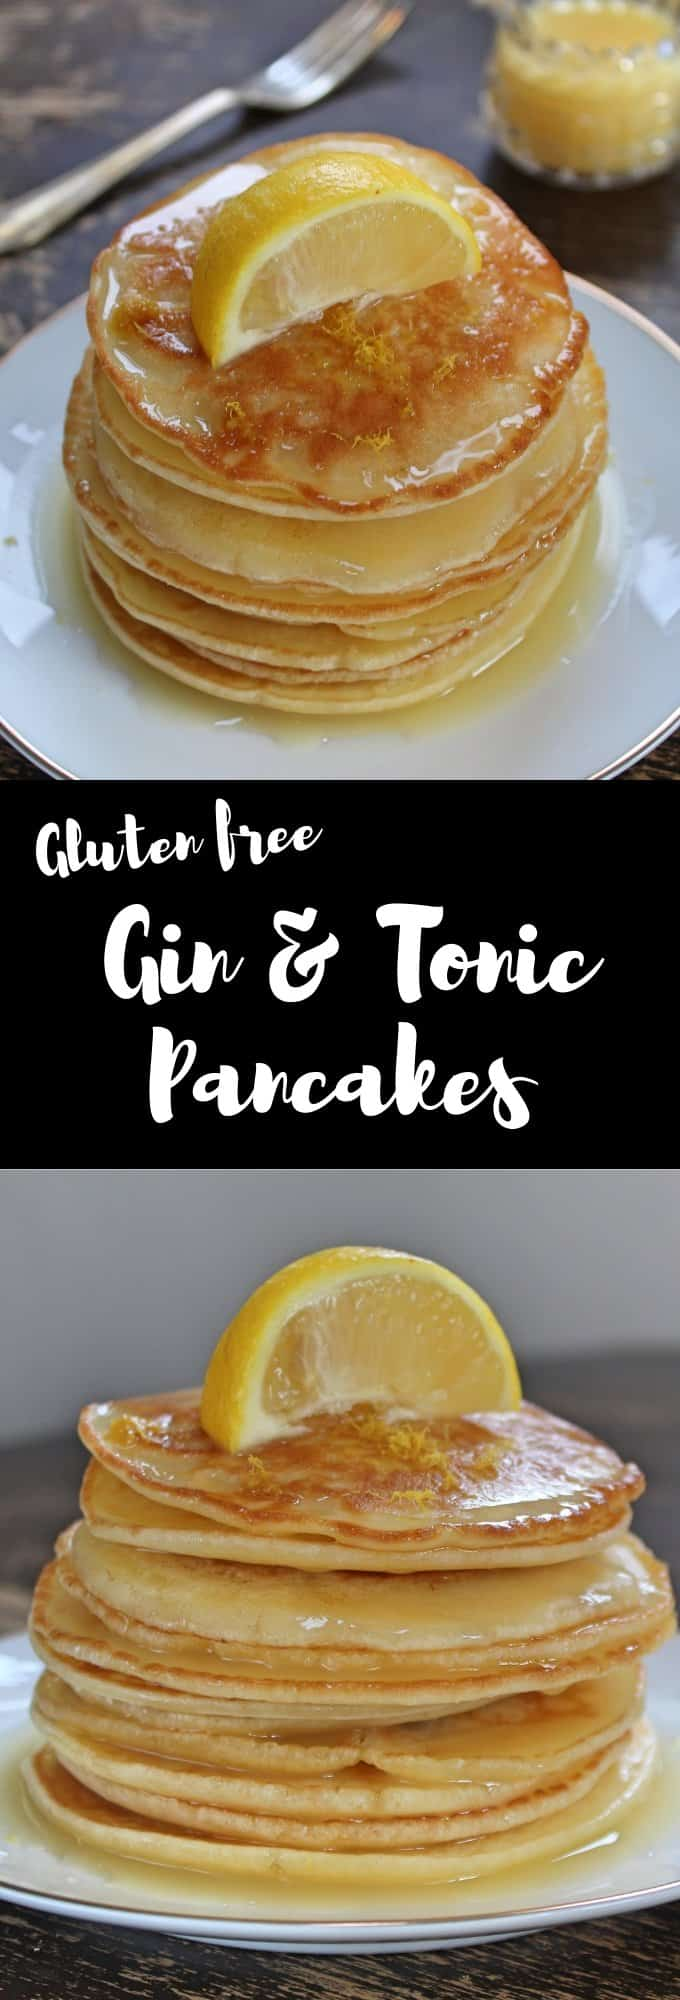 gluten free gin and tonic pancakes dairy free coeliac shrove tuesday recipe